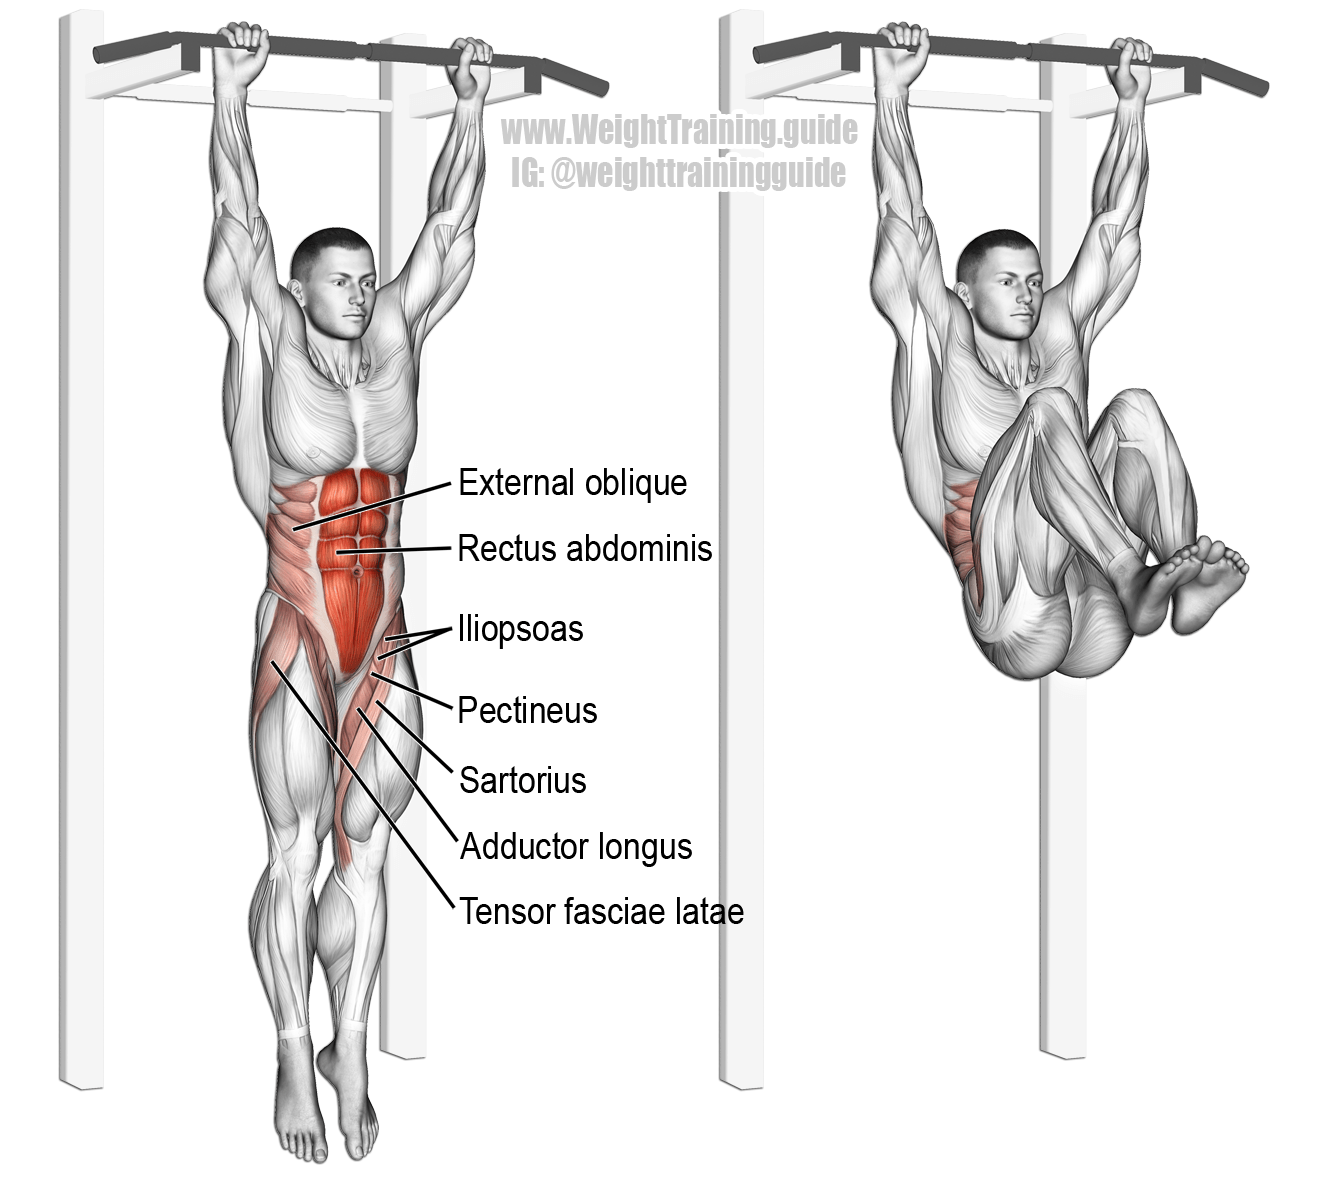 Hanging Leg And Hip Raise One Of The Most Effect Core Exercises See Website For Details